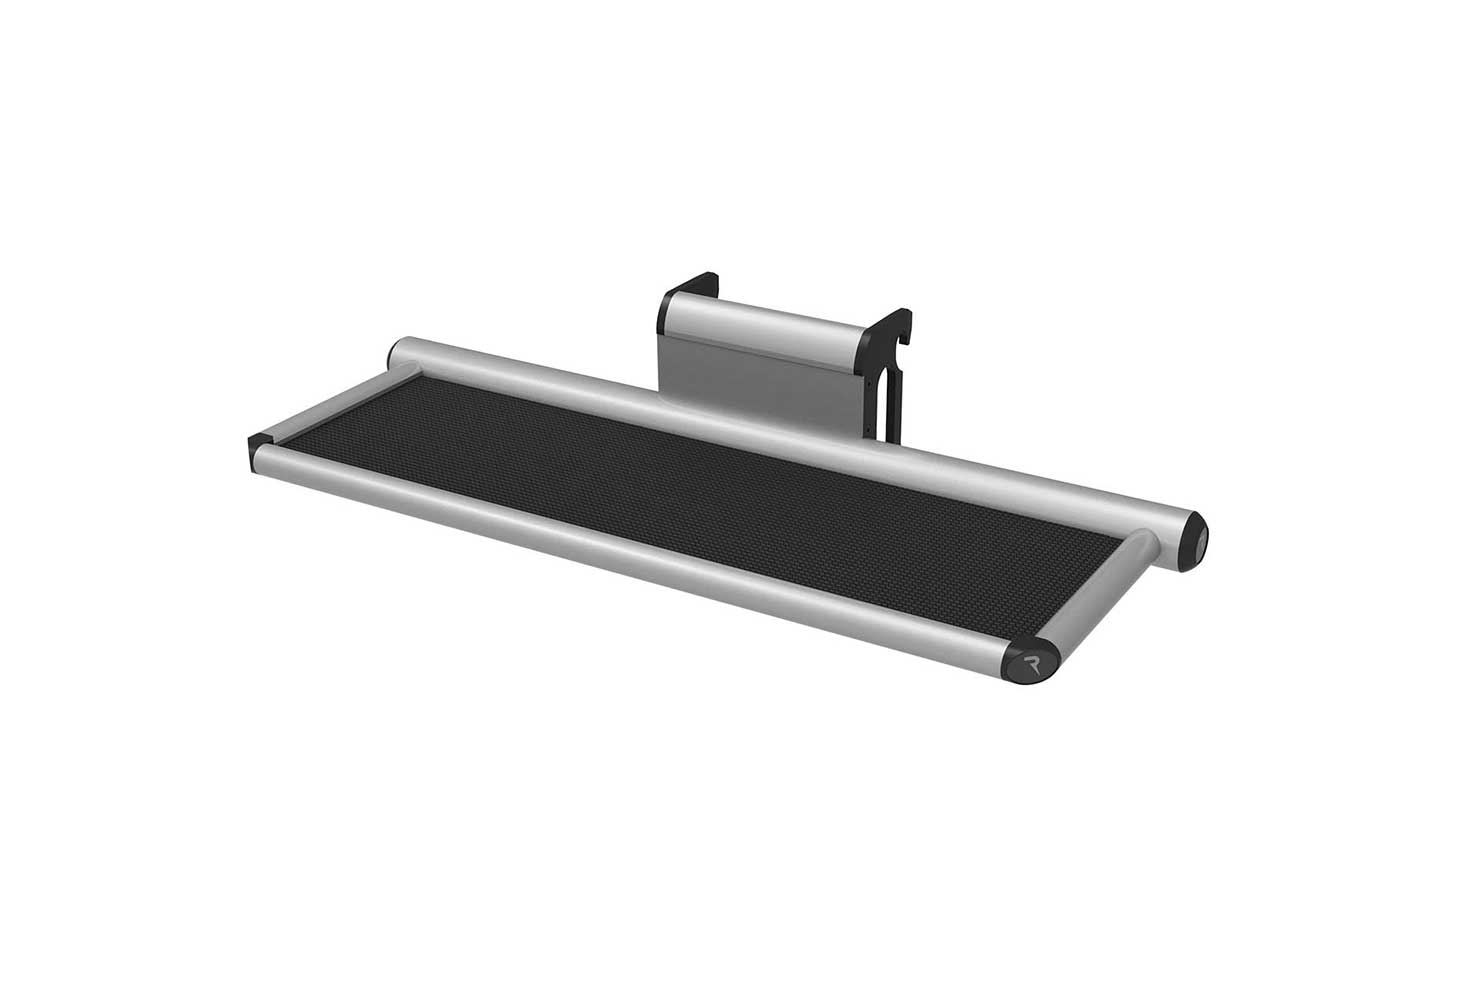 RX1514 Reax Storage Shelf 2 - 145